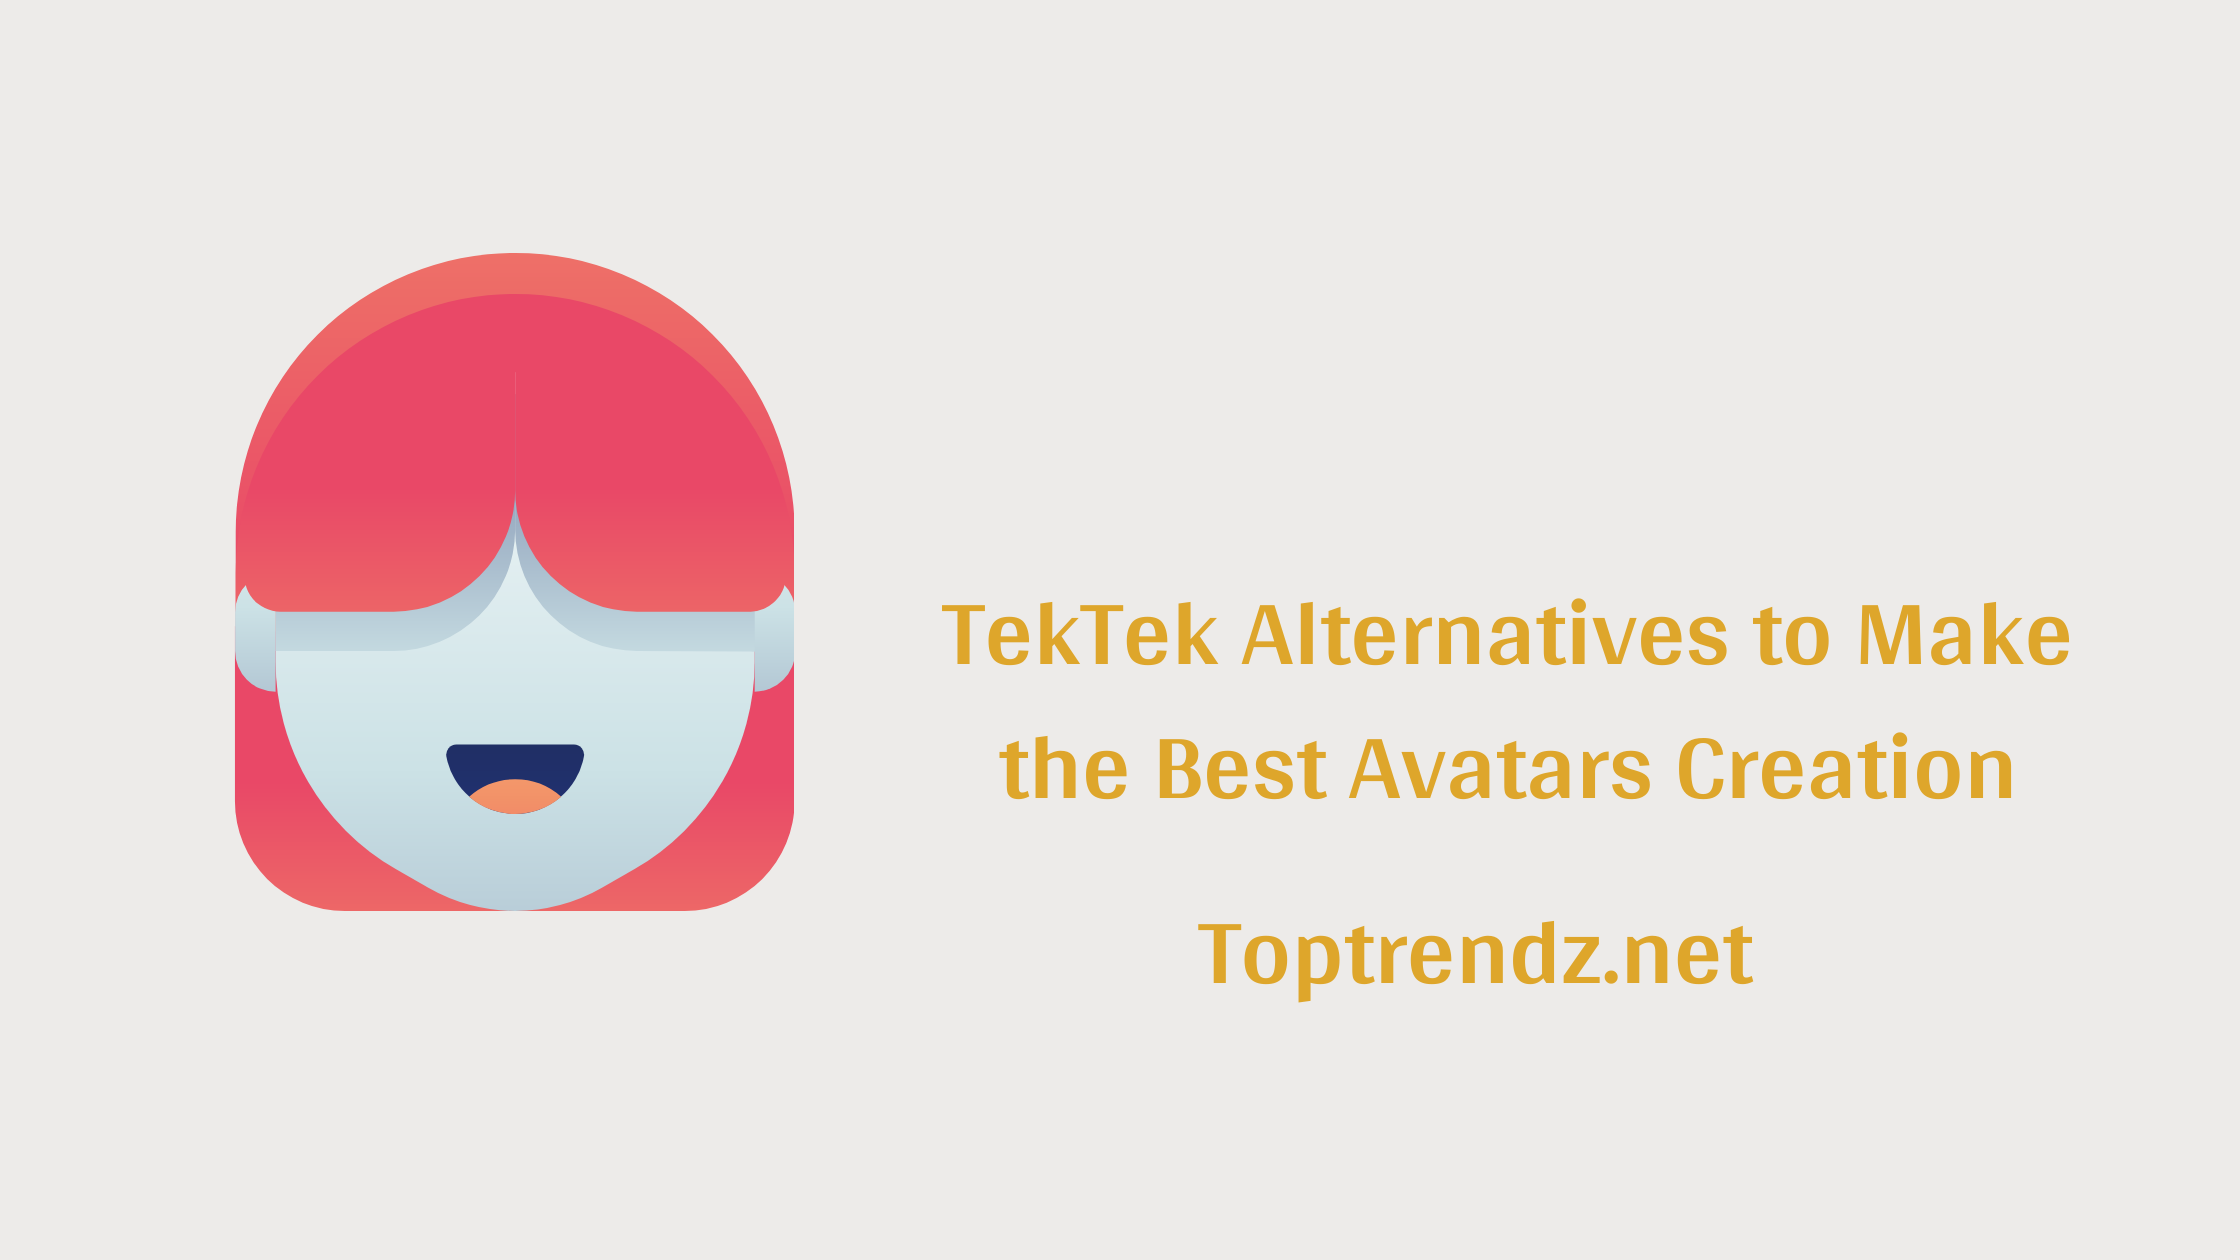 Best 11 TekTek Alternatives to Make the Best Avatars Creation